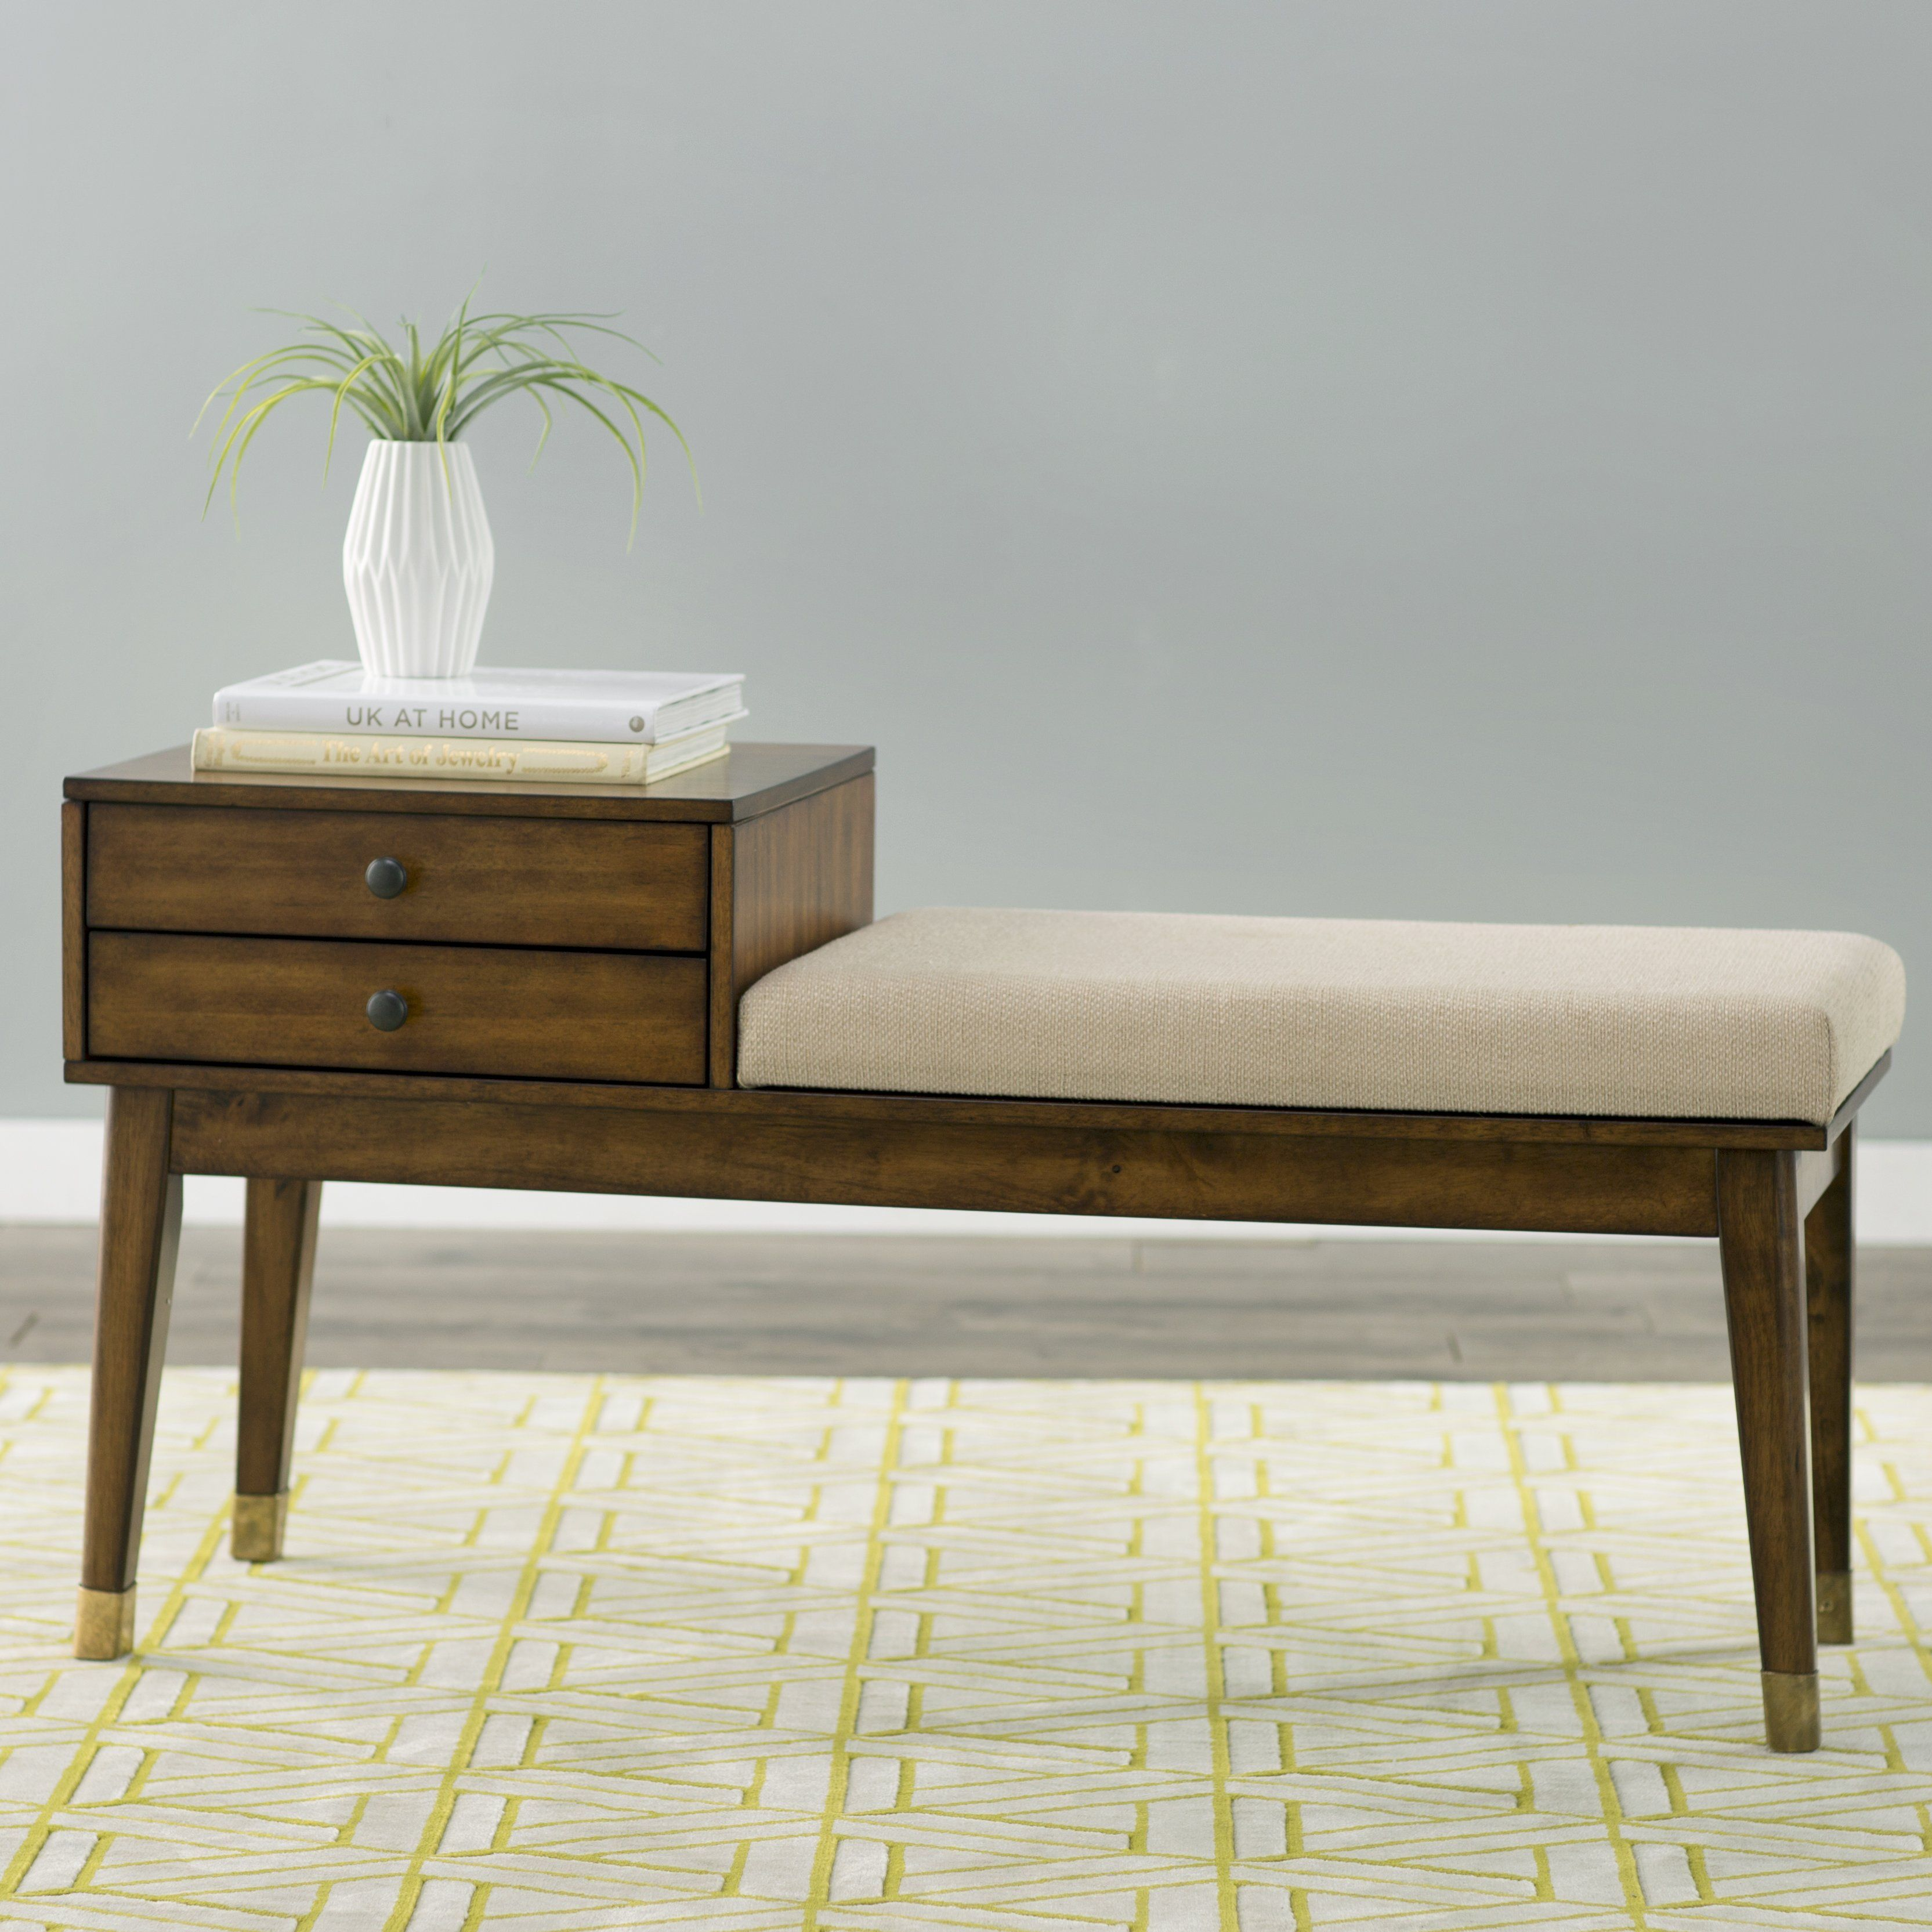 Pelicano Storage Bench Entryway